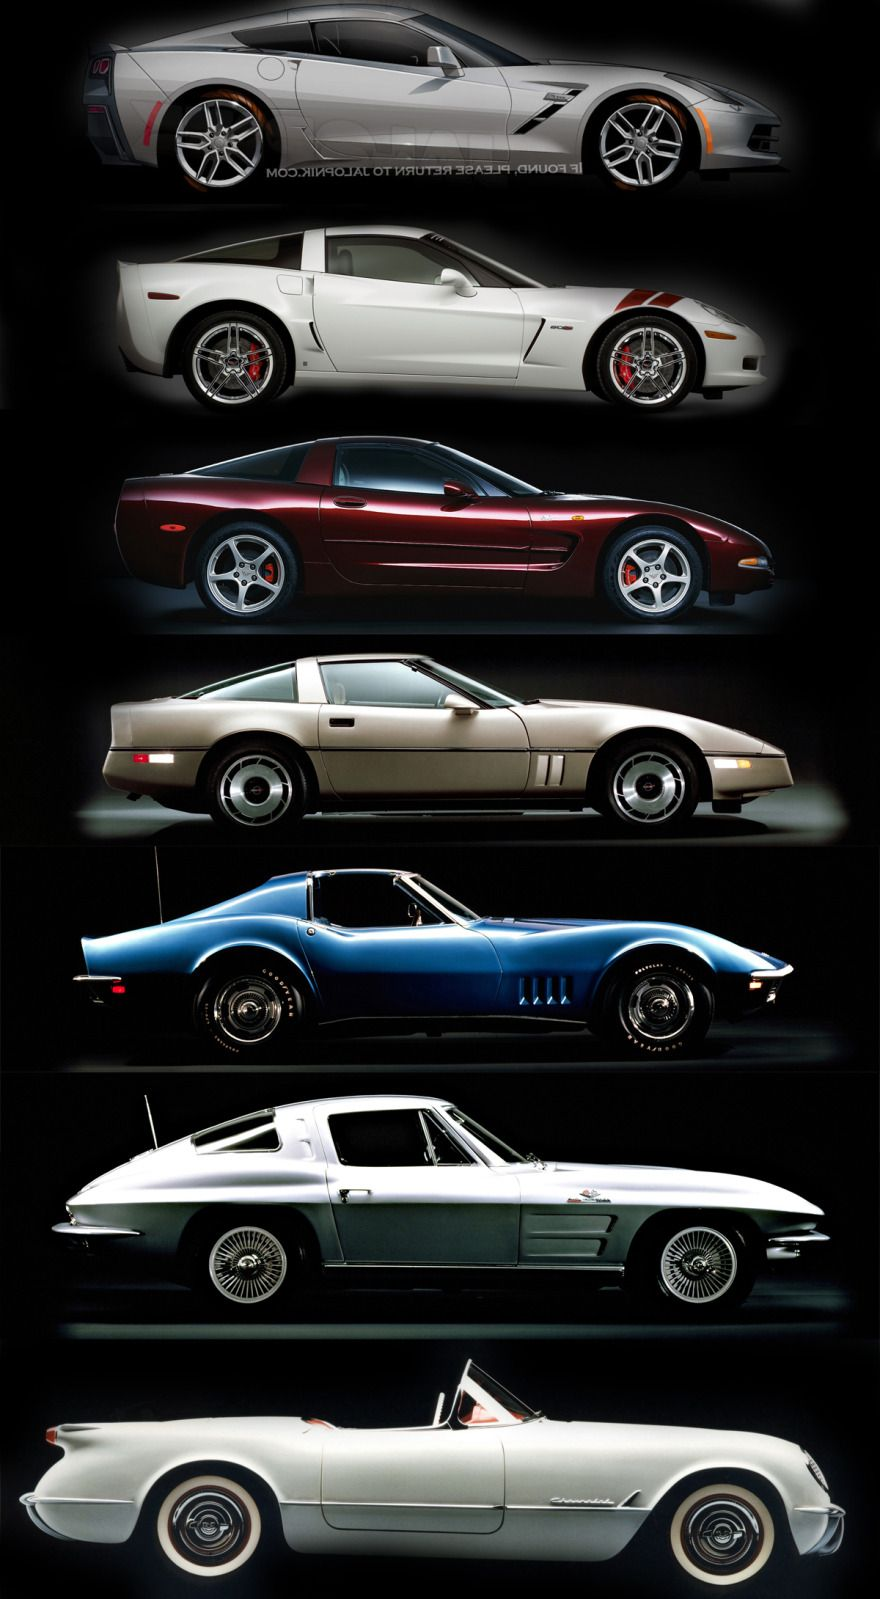 Corvettes Over The Years Corvette Classic Corvette Super Cars